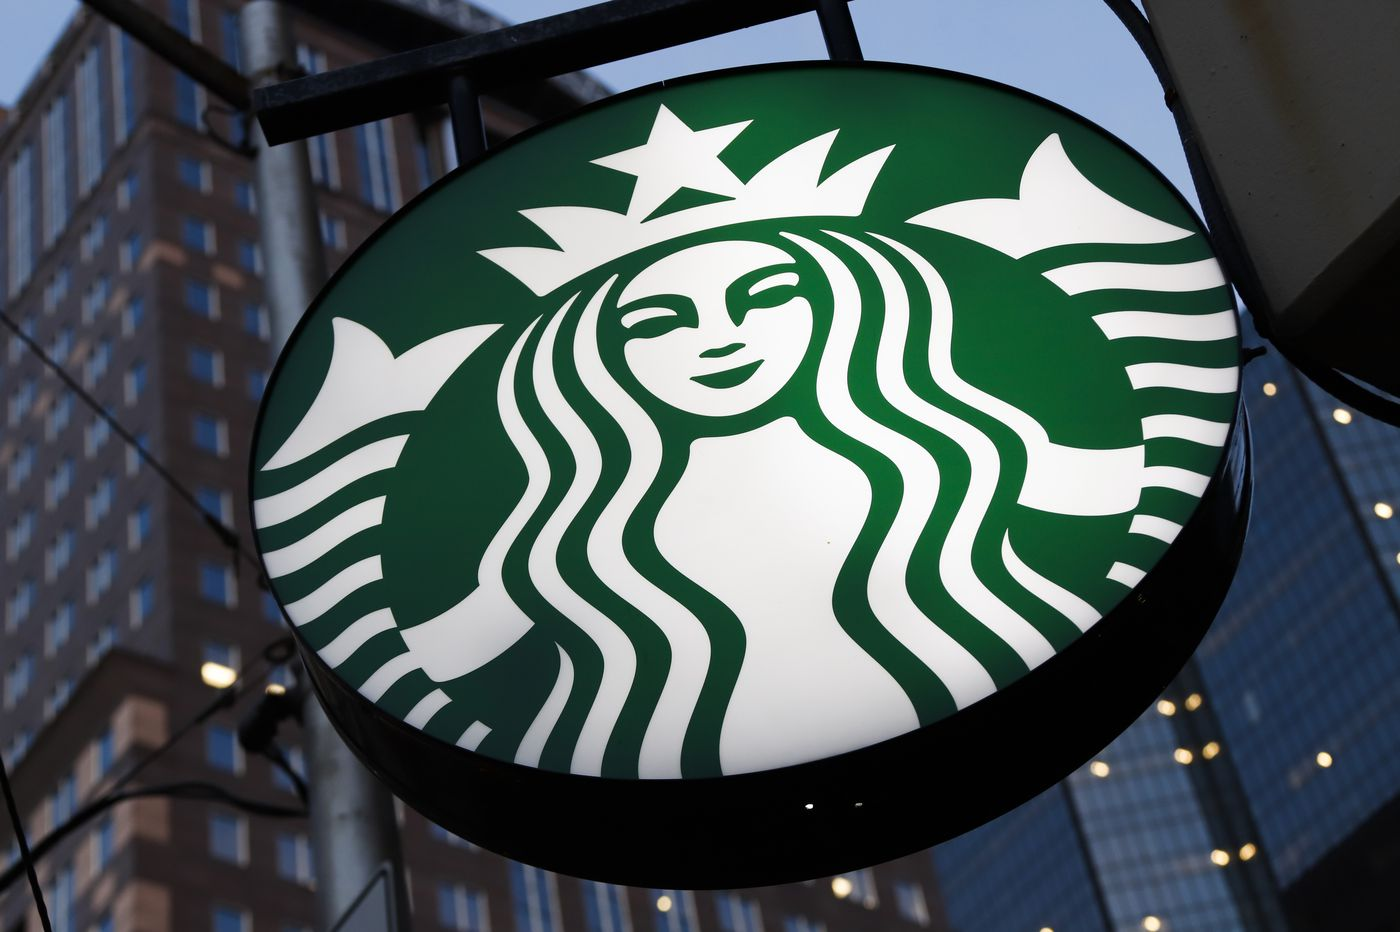 Starbucks apologizes to police officer for 'PIG' message on his coffee cup